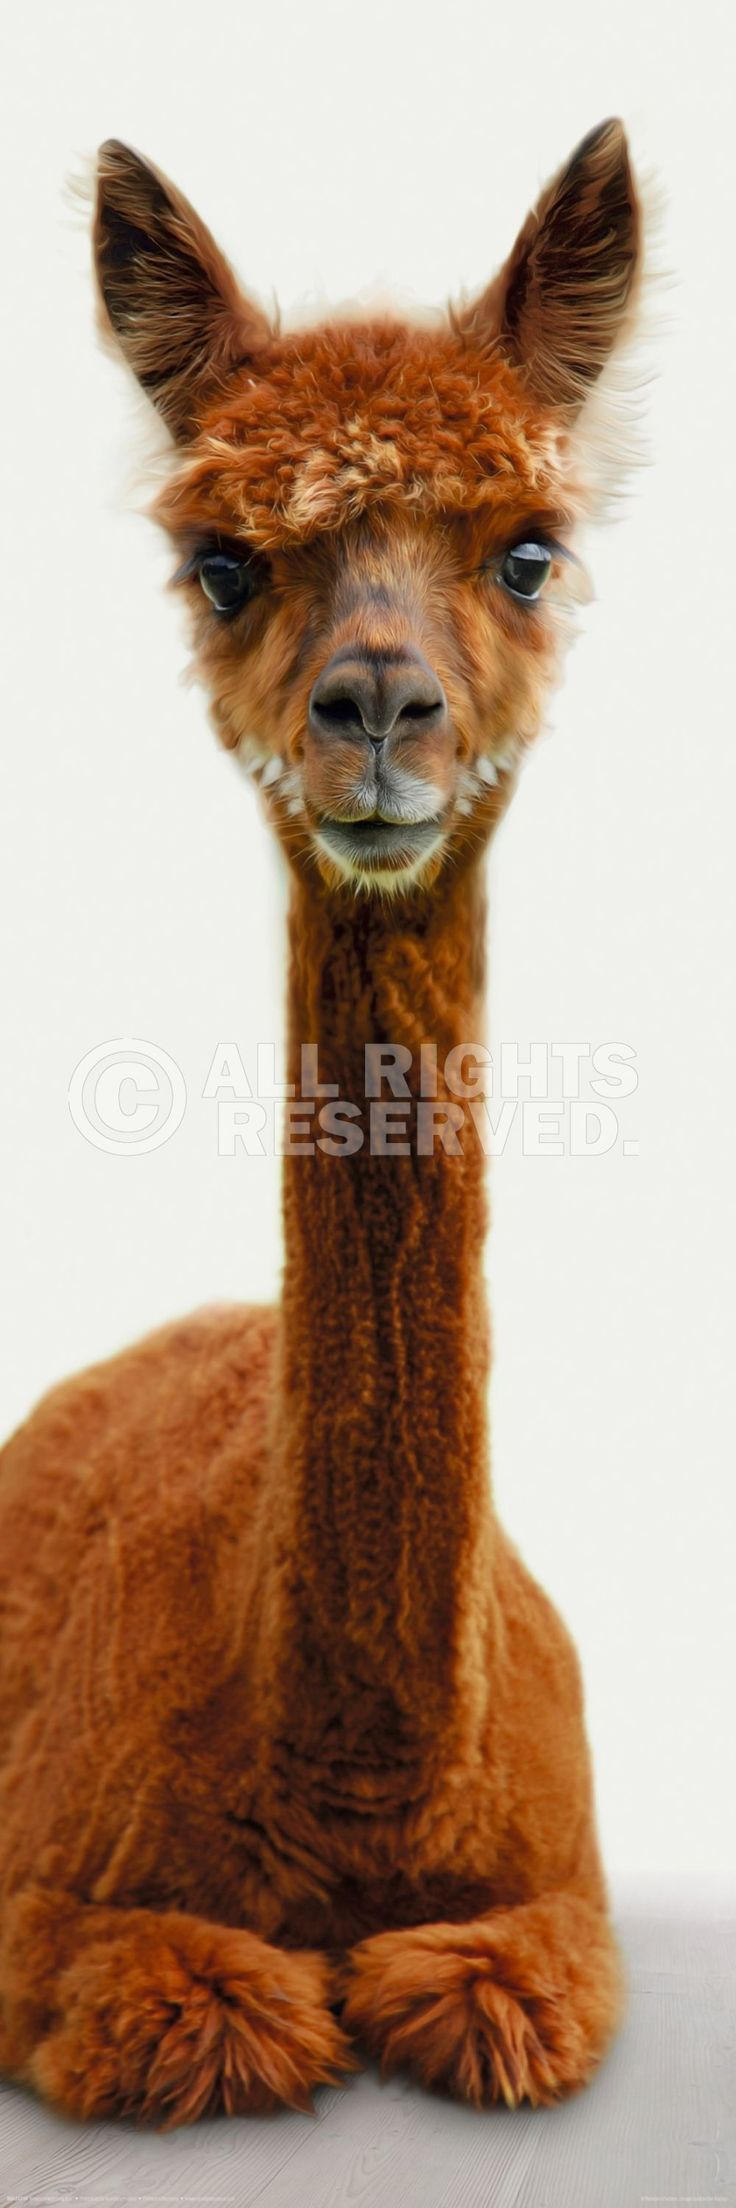 Poster 30x90cm: Alpaca is watching you. Bestel 'm nu @ reindersshop.com!